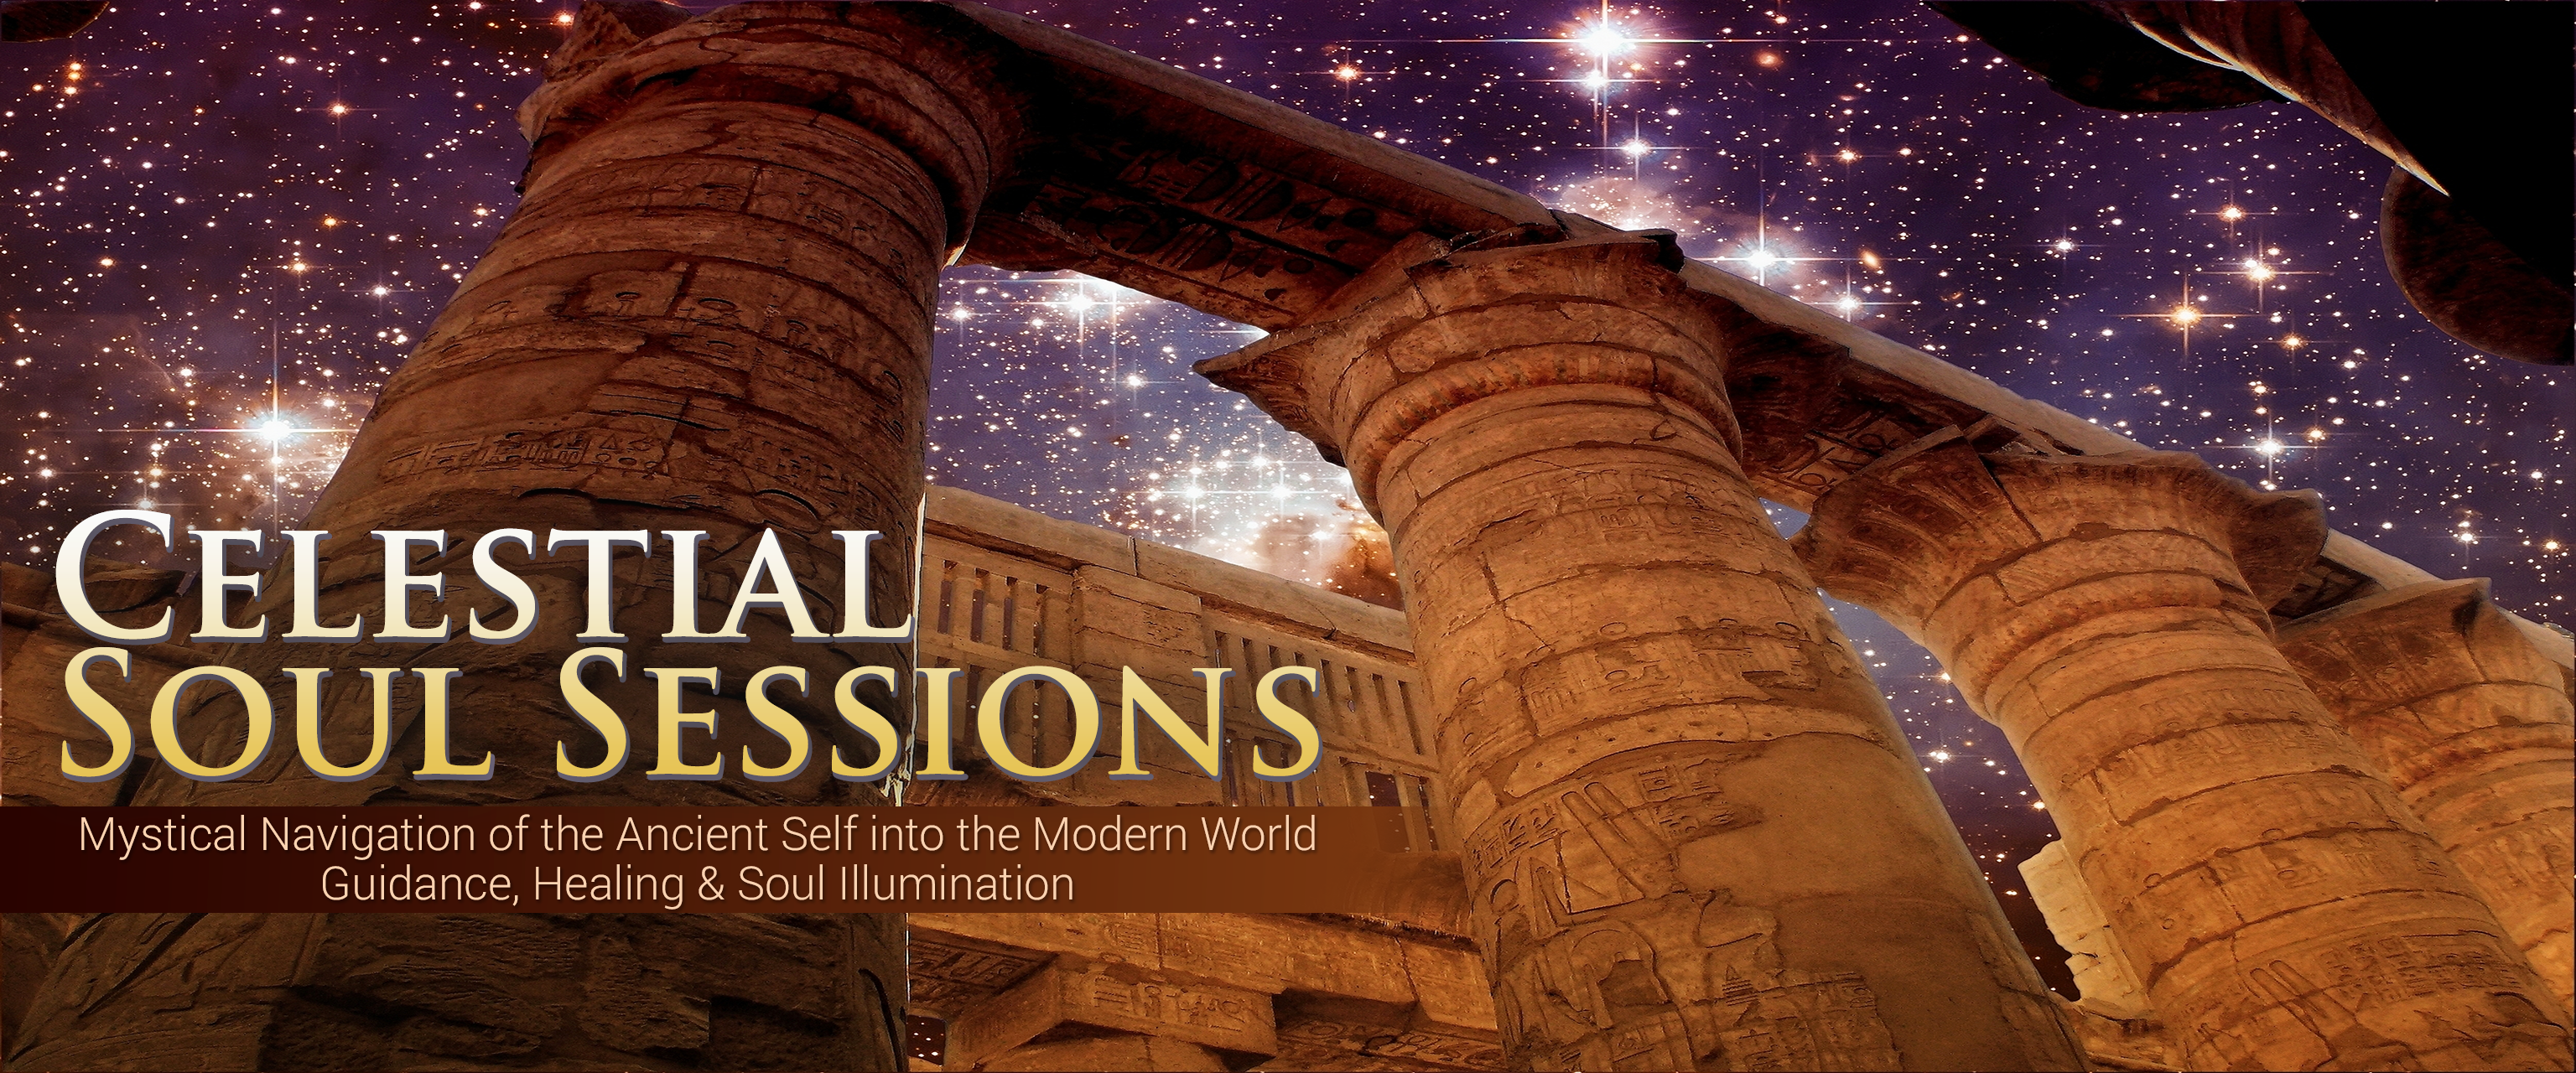 Celestial Soul Sessions